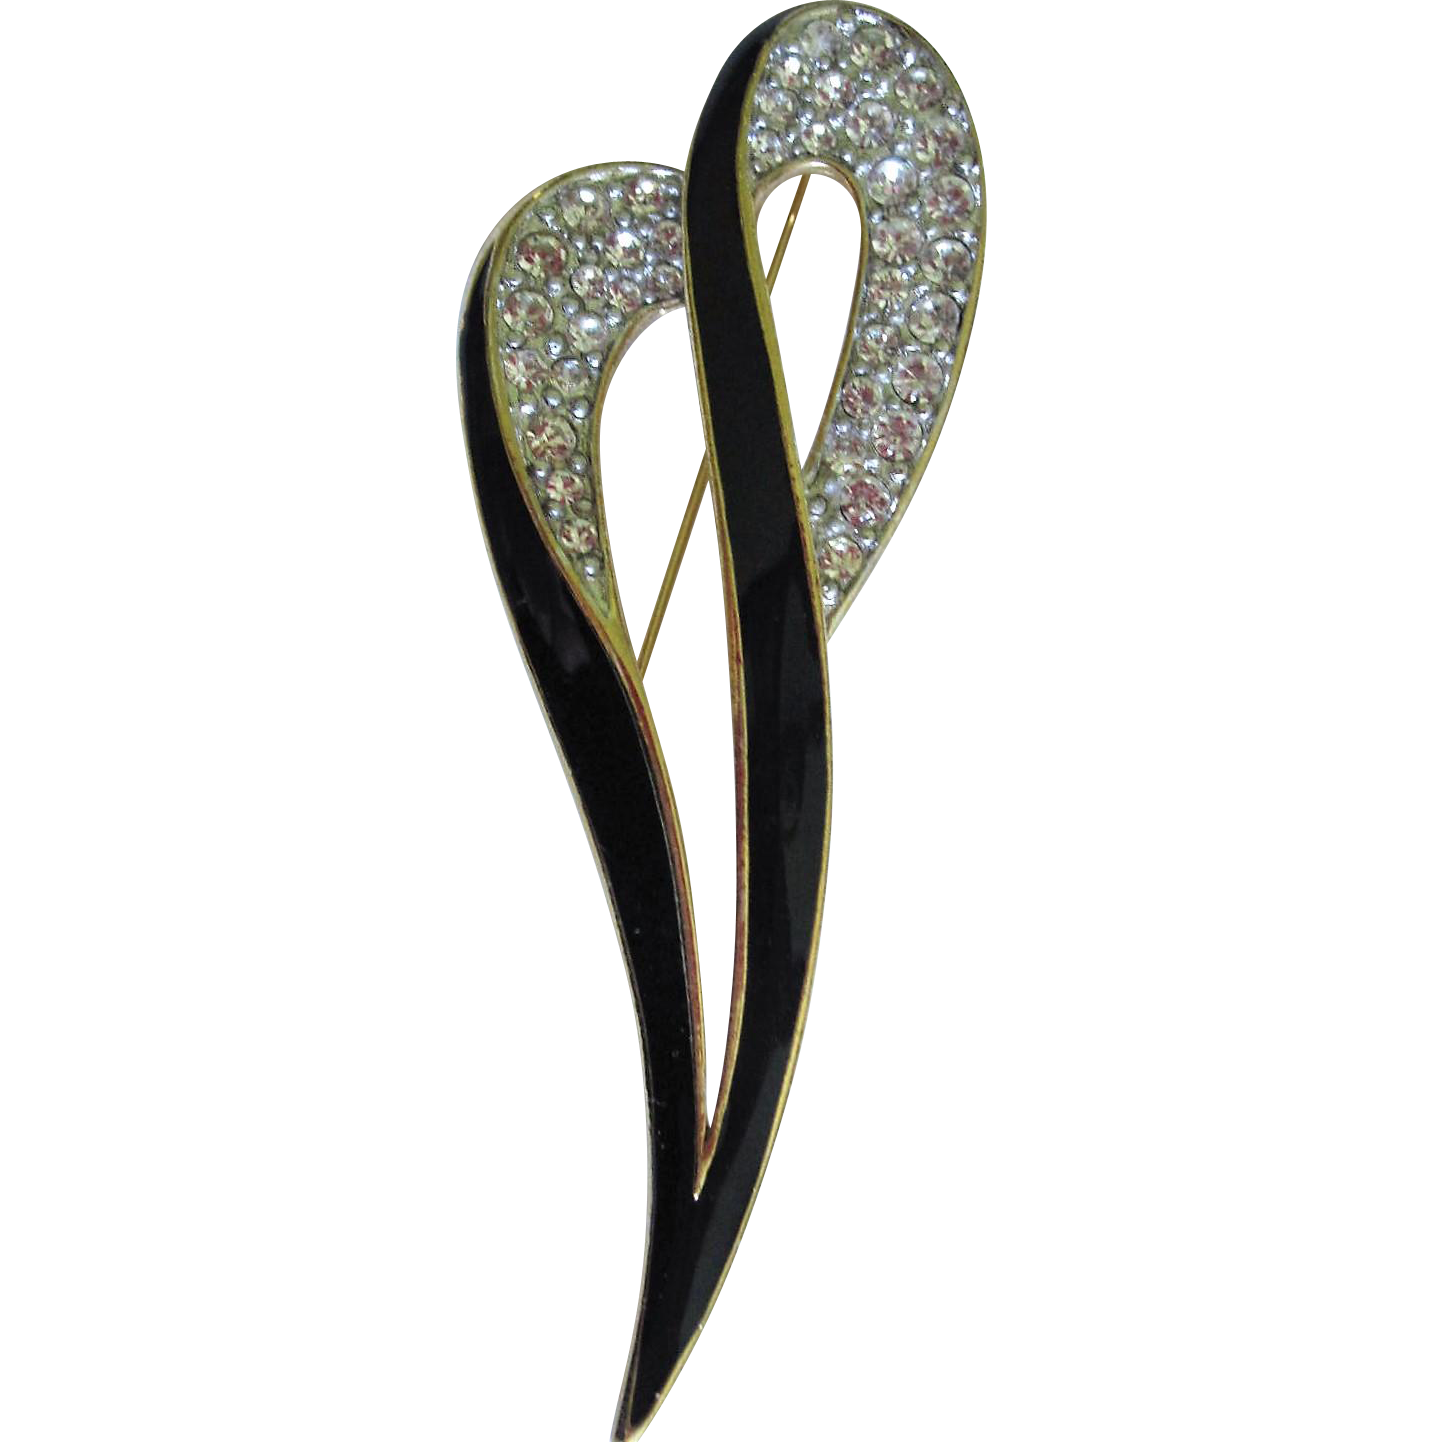 Designer signed Trifari Brooch, classic enameled and jewel encrusted pin